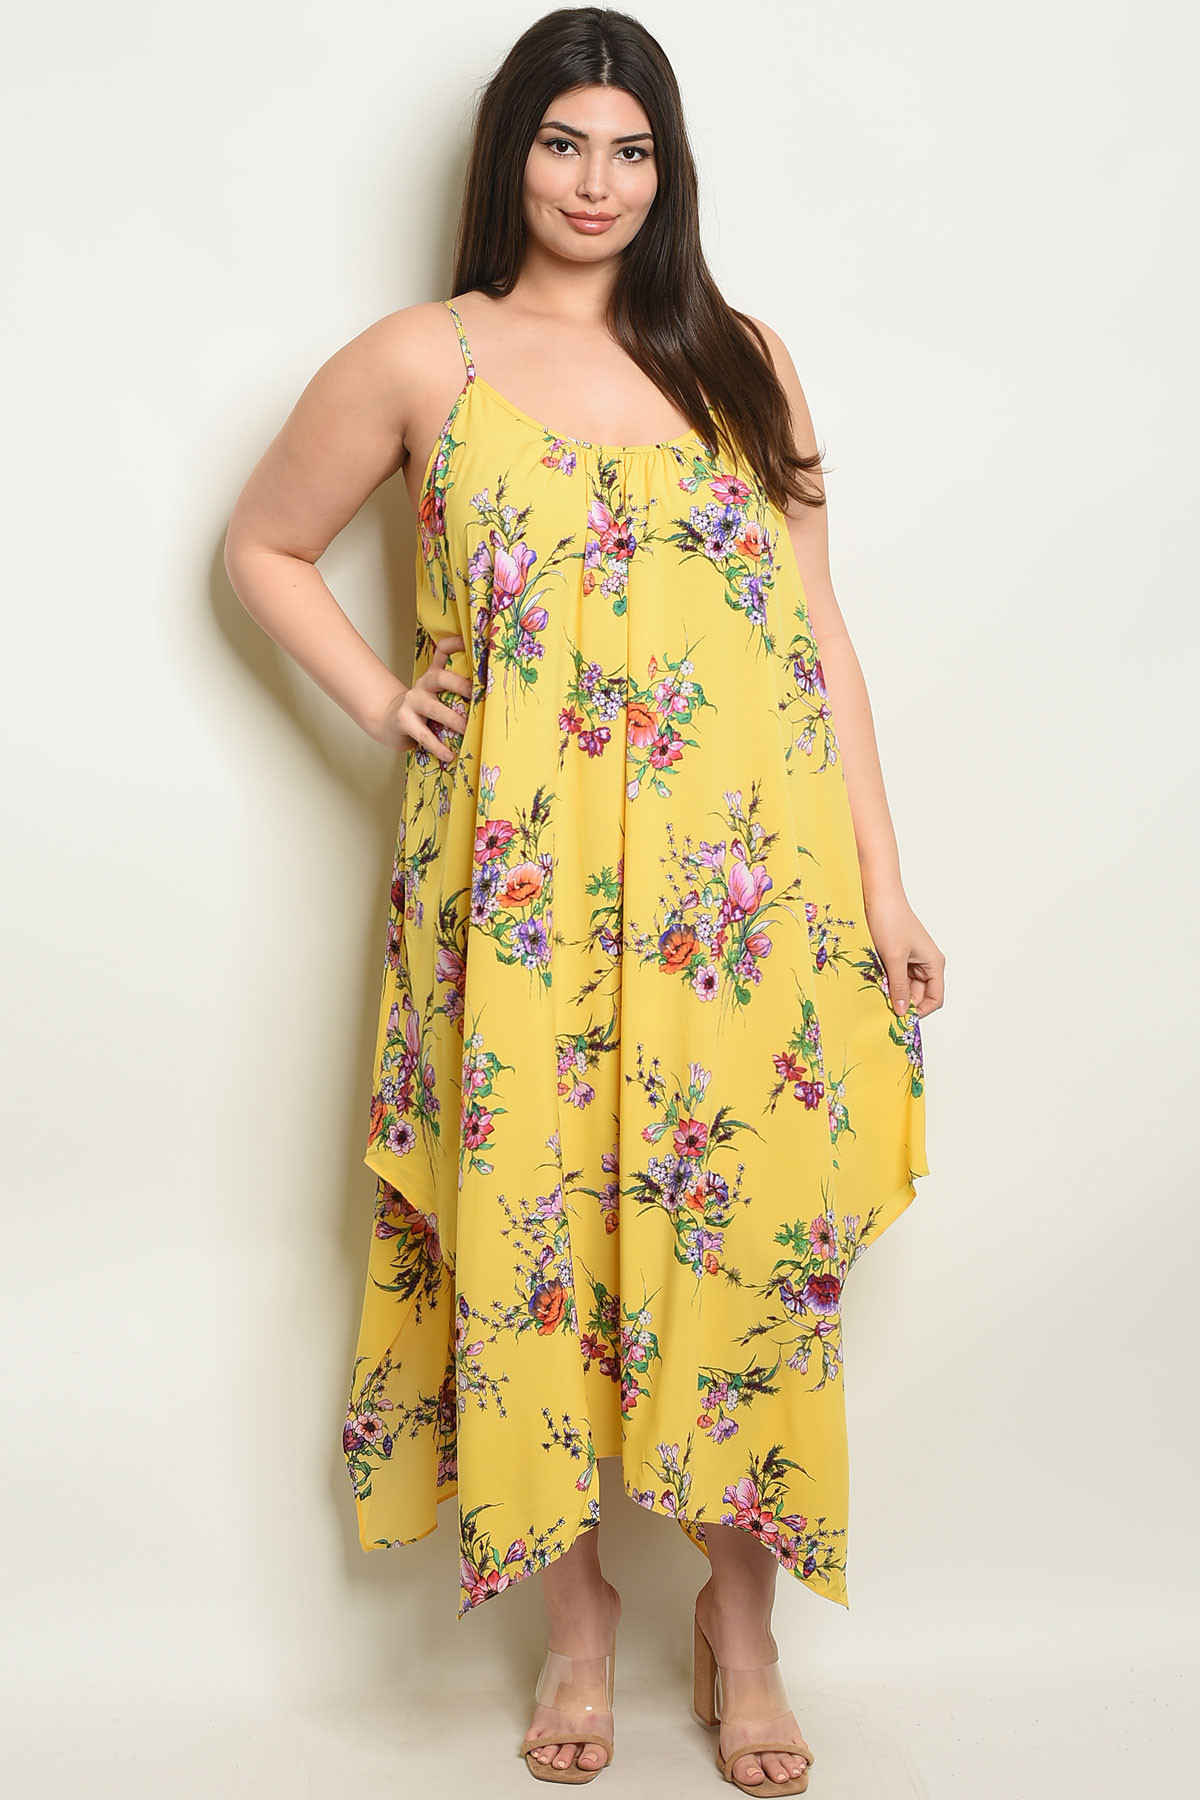 S4-7-4-D116668X YELLOW FLORAL PLUS SIZE DRESS 2-2-2